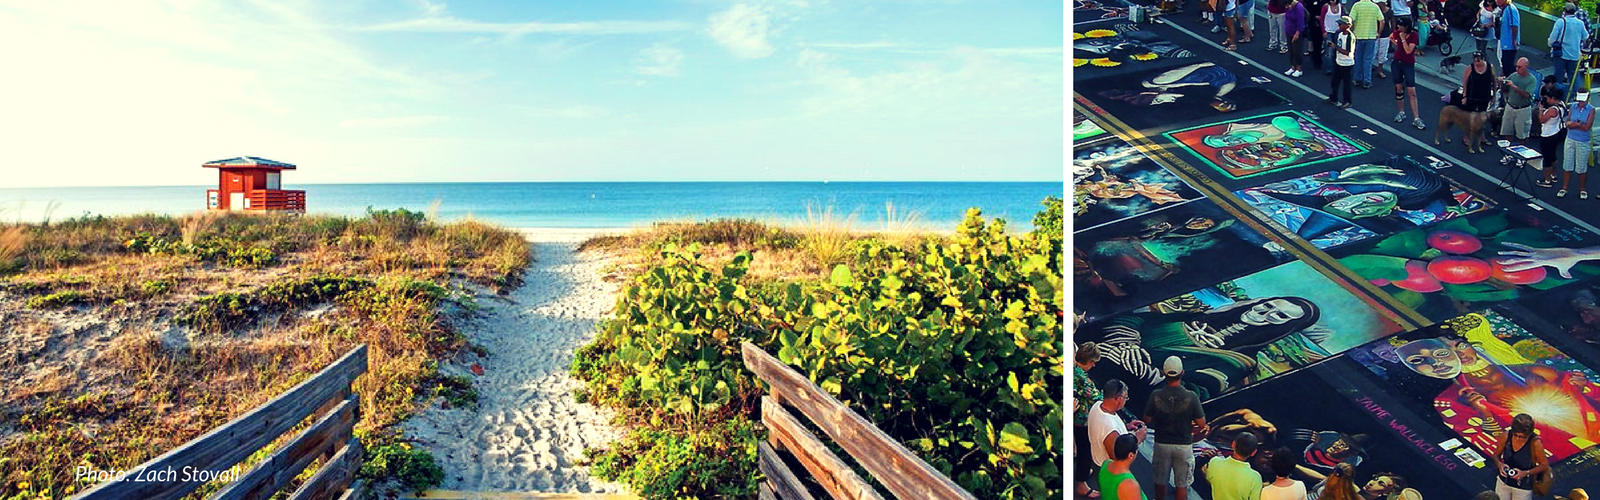 Dream Town Sarasota attractions